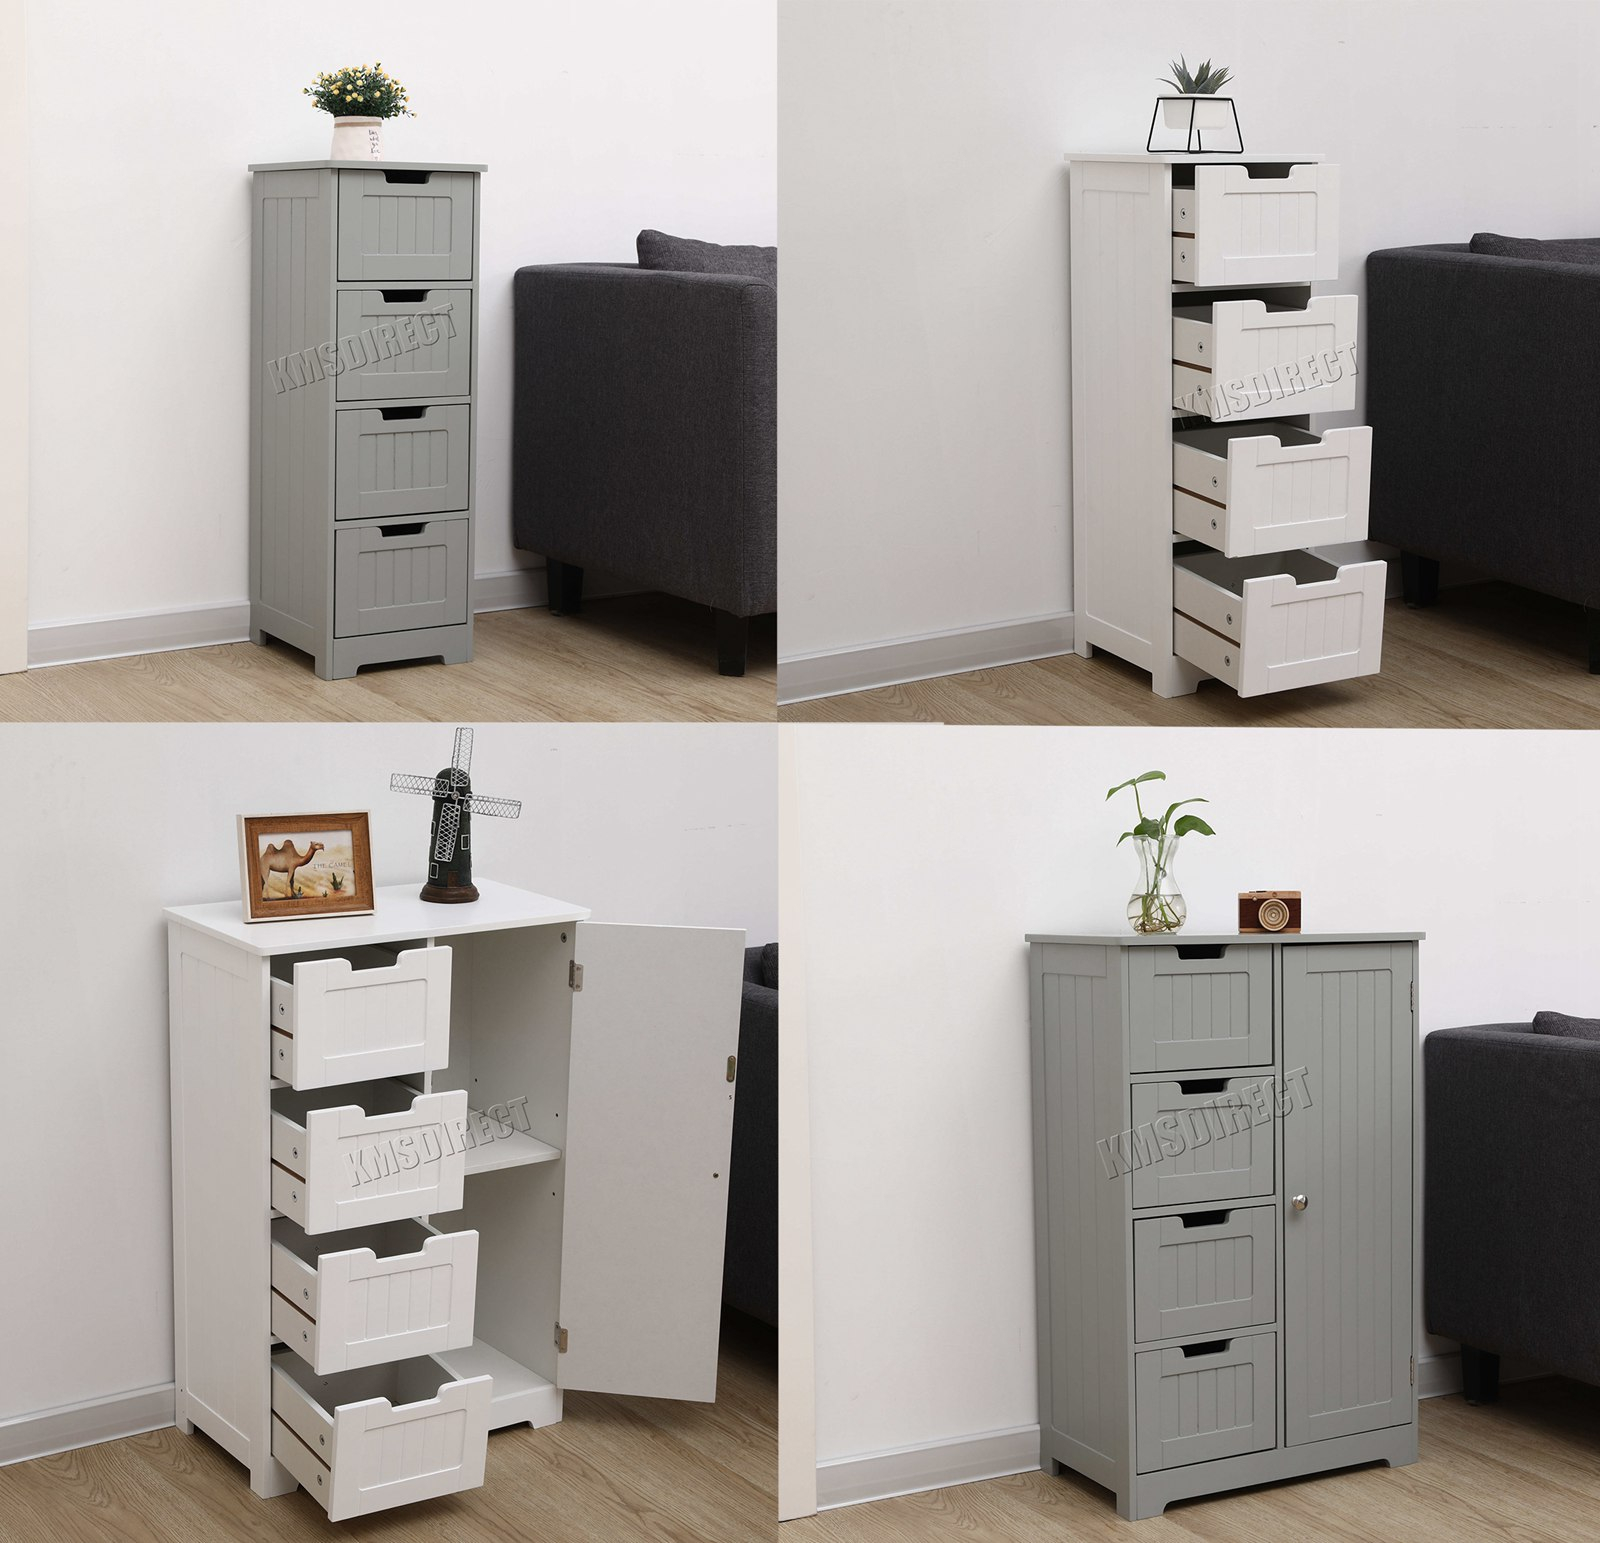 Details About Westwood Bathroom Storage Cabinet Wooden 4 Drawer Cupboard Free Standing Unit regarding size 1600 X 1543